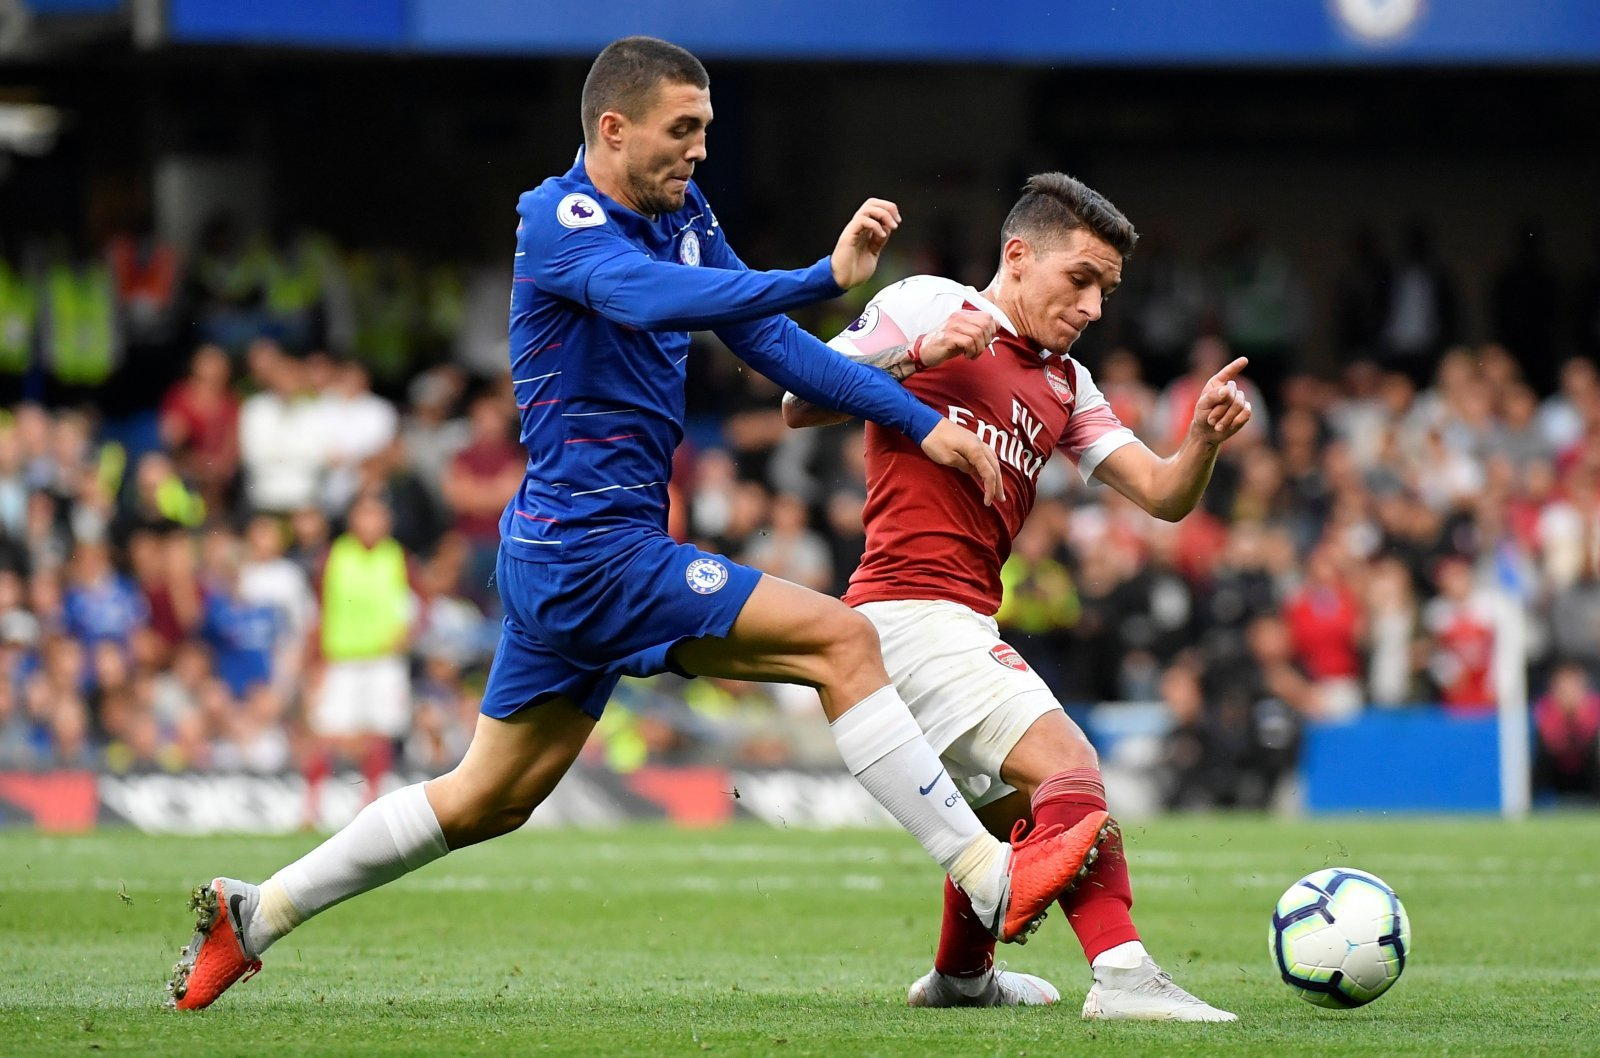 Chelsea: Mateo Kovacic will now return to Cobham to receive treatment